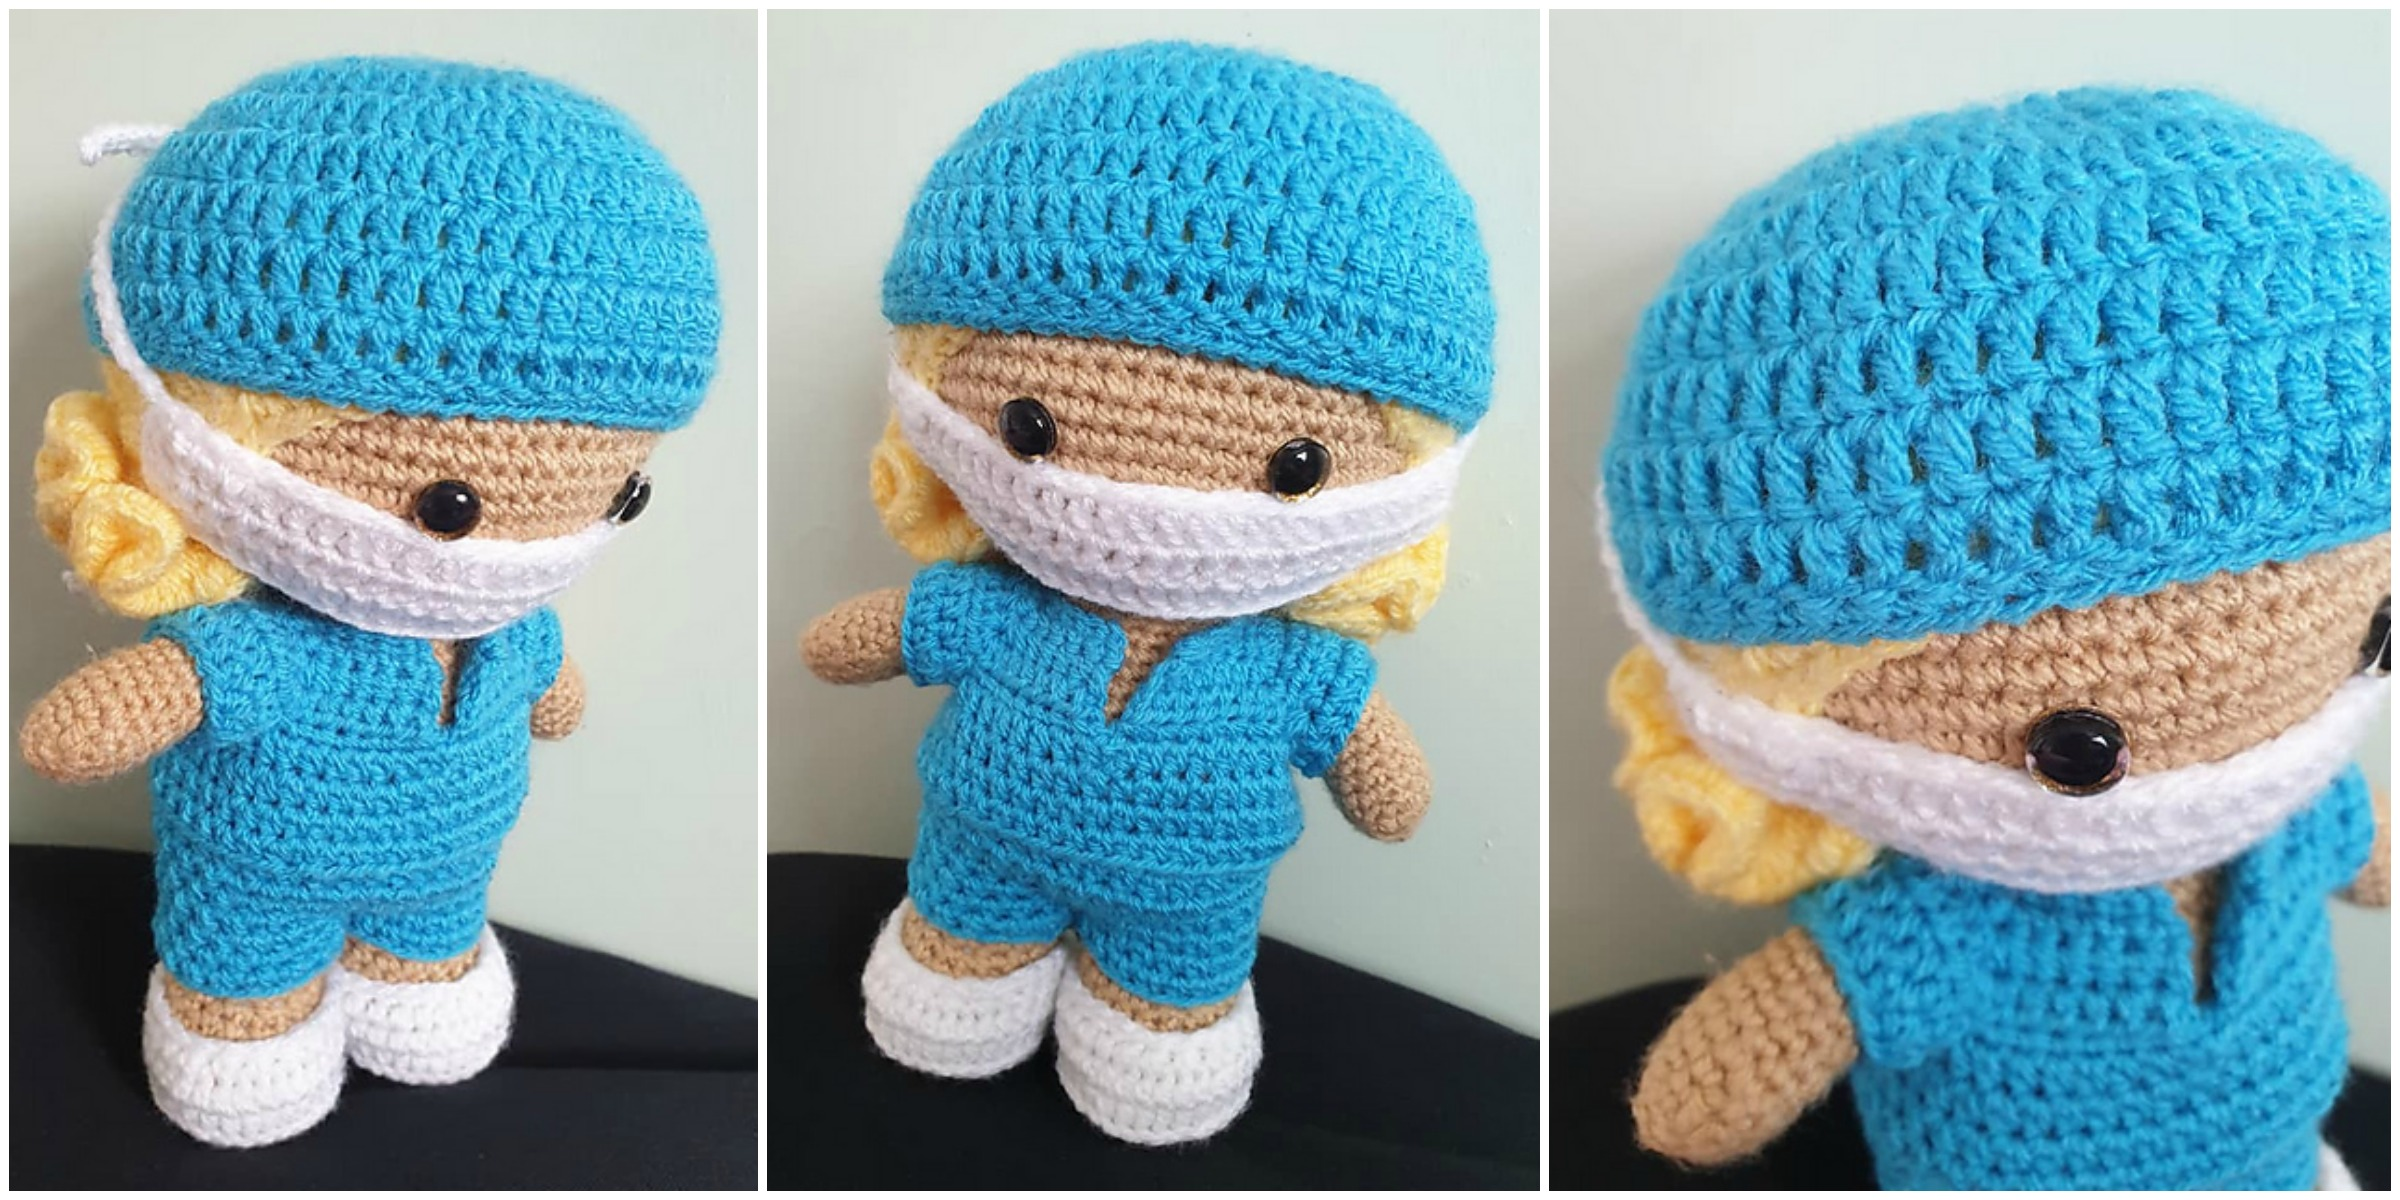 Make your own healthcare hero teddy bear with this free crochet ... | 1200x2400